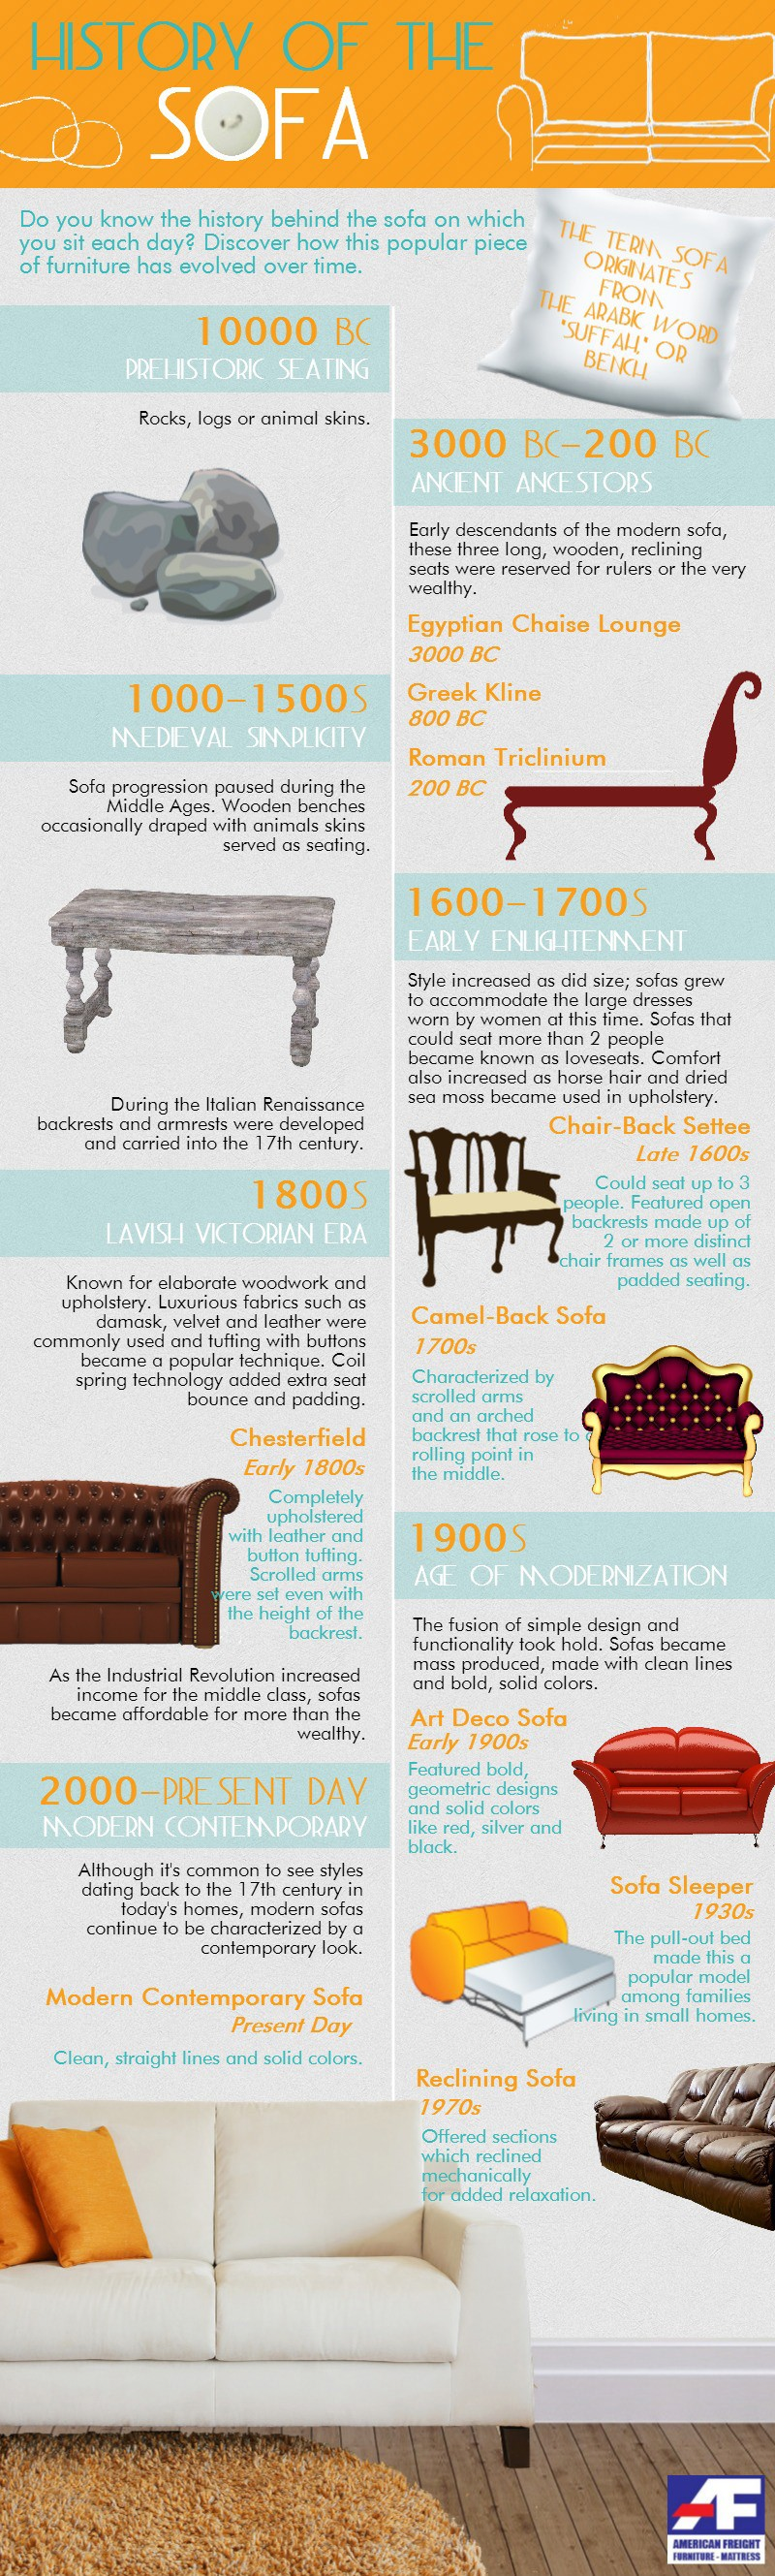 The History Of The Sofa Infographic American Freight